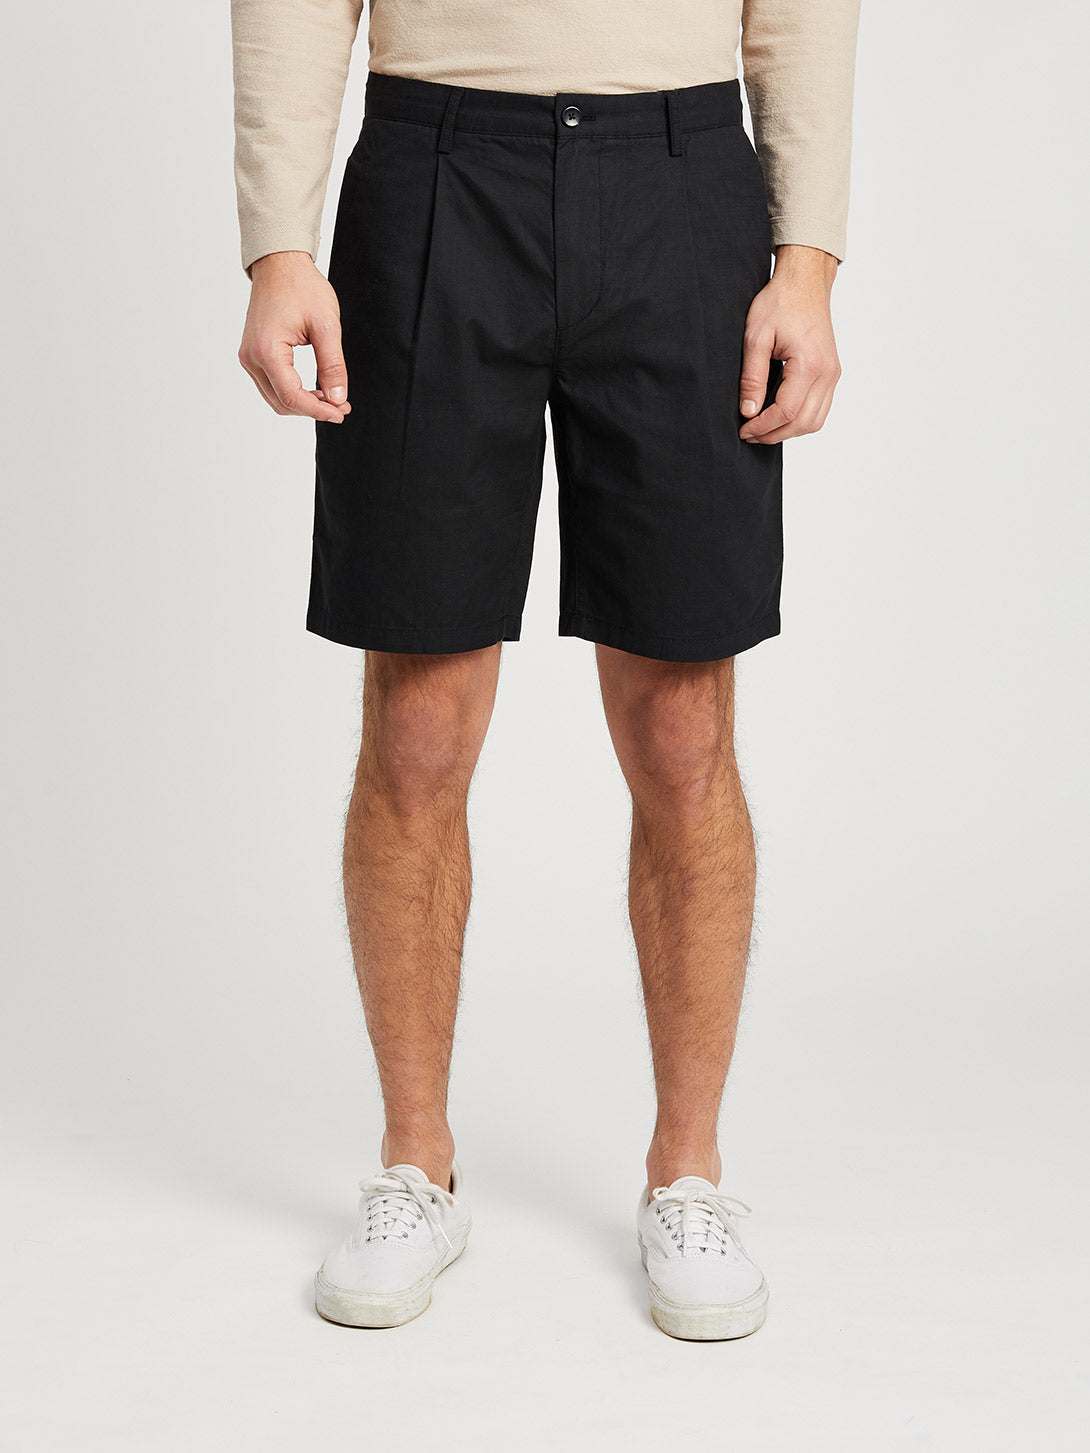 JET BLACK shorts for men modern shorts ons clothing